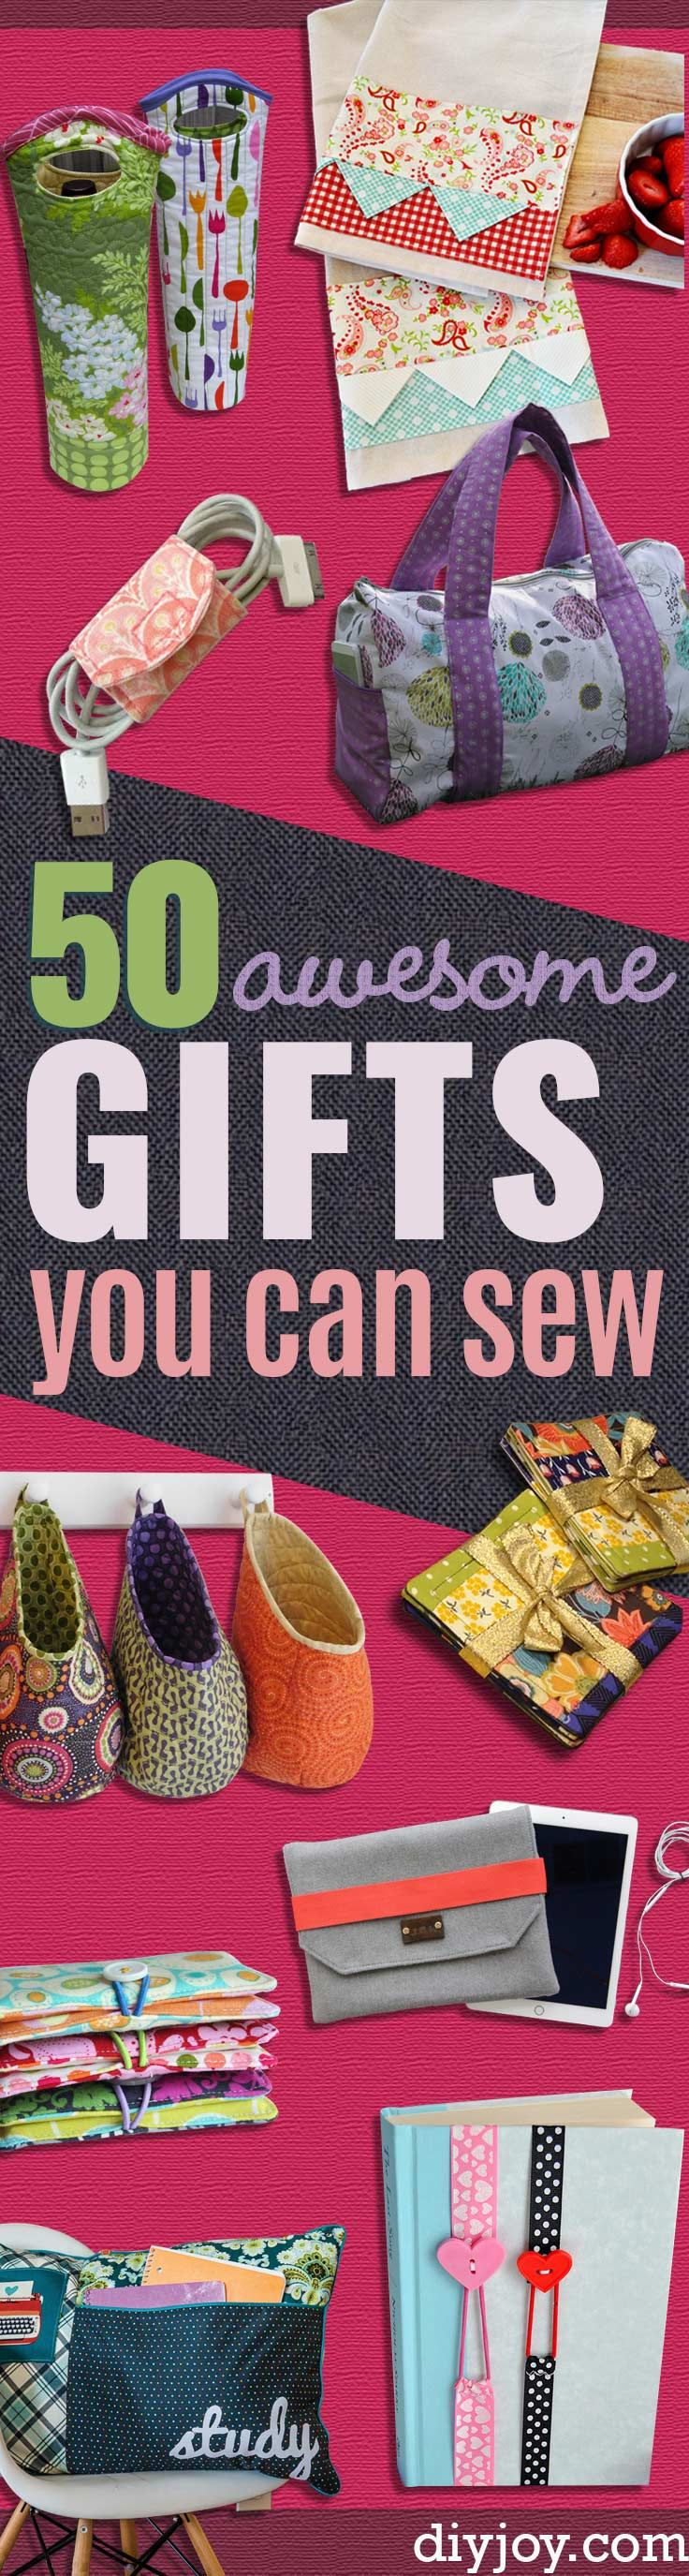 50 Diy Sewing Gift Ideas To Make For Just About Anyone Diy Sewing Gifts Sewing Gifts Easy Sewing Projects